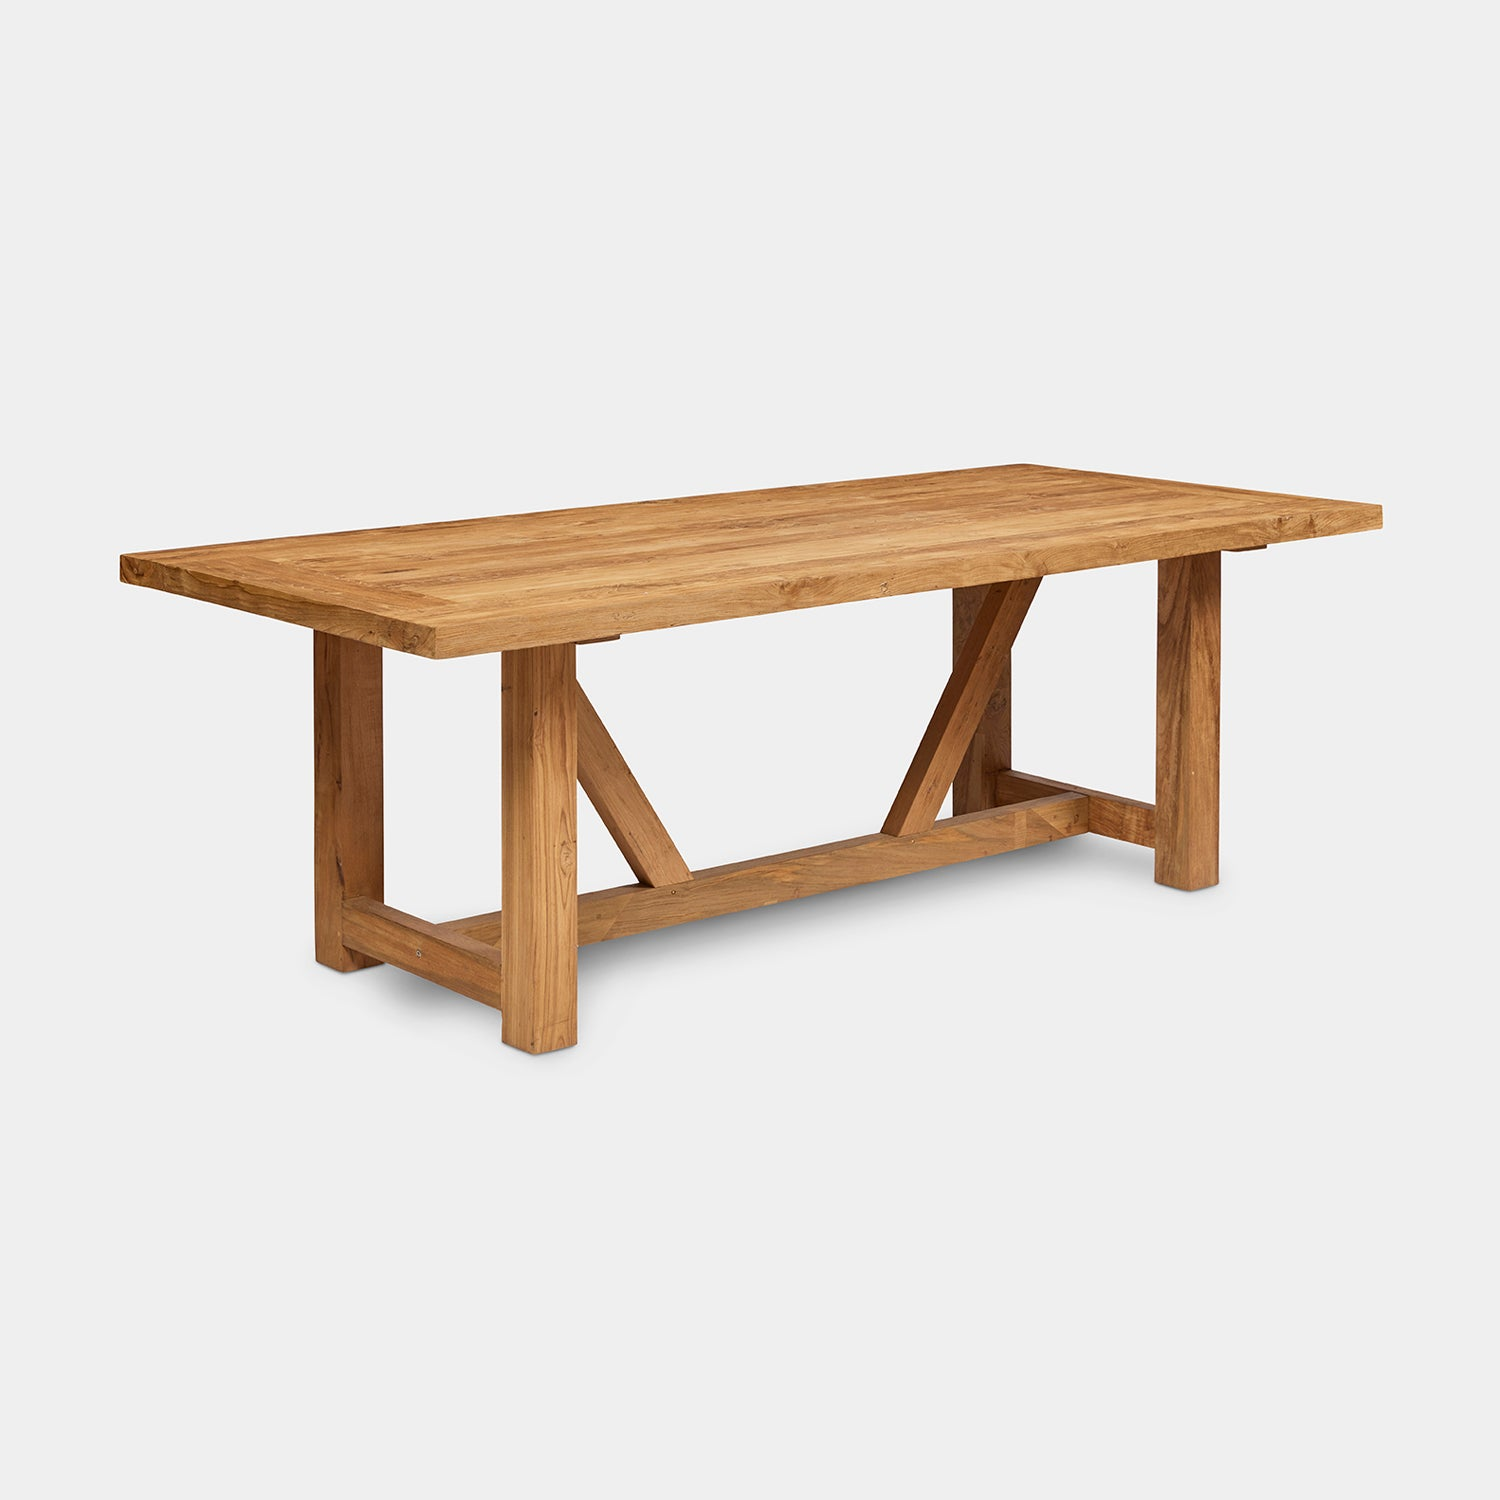 Reclaimed-Teak-Outdoor-Dining-Table-Vinegard-r1